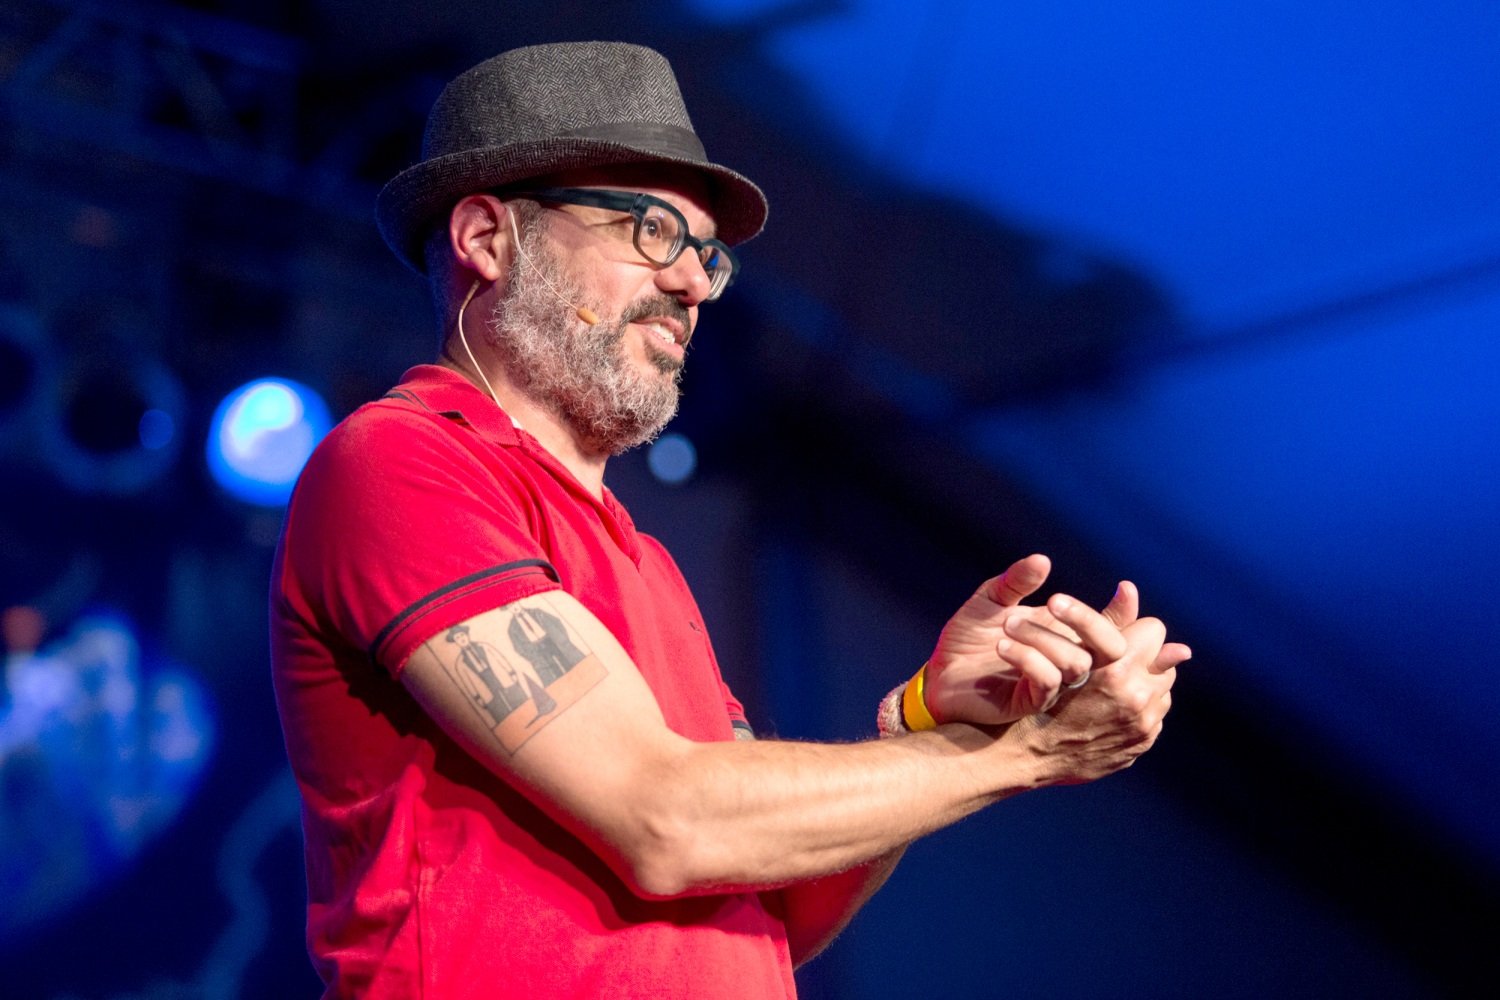 David Cross responds to accusations of racism